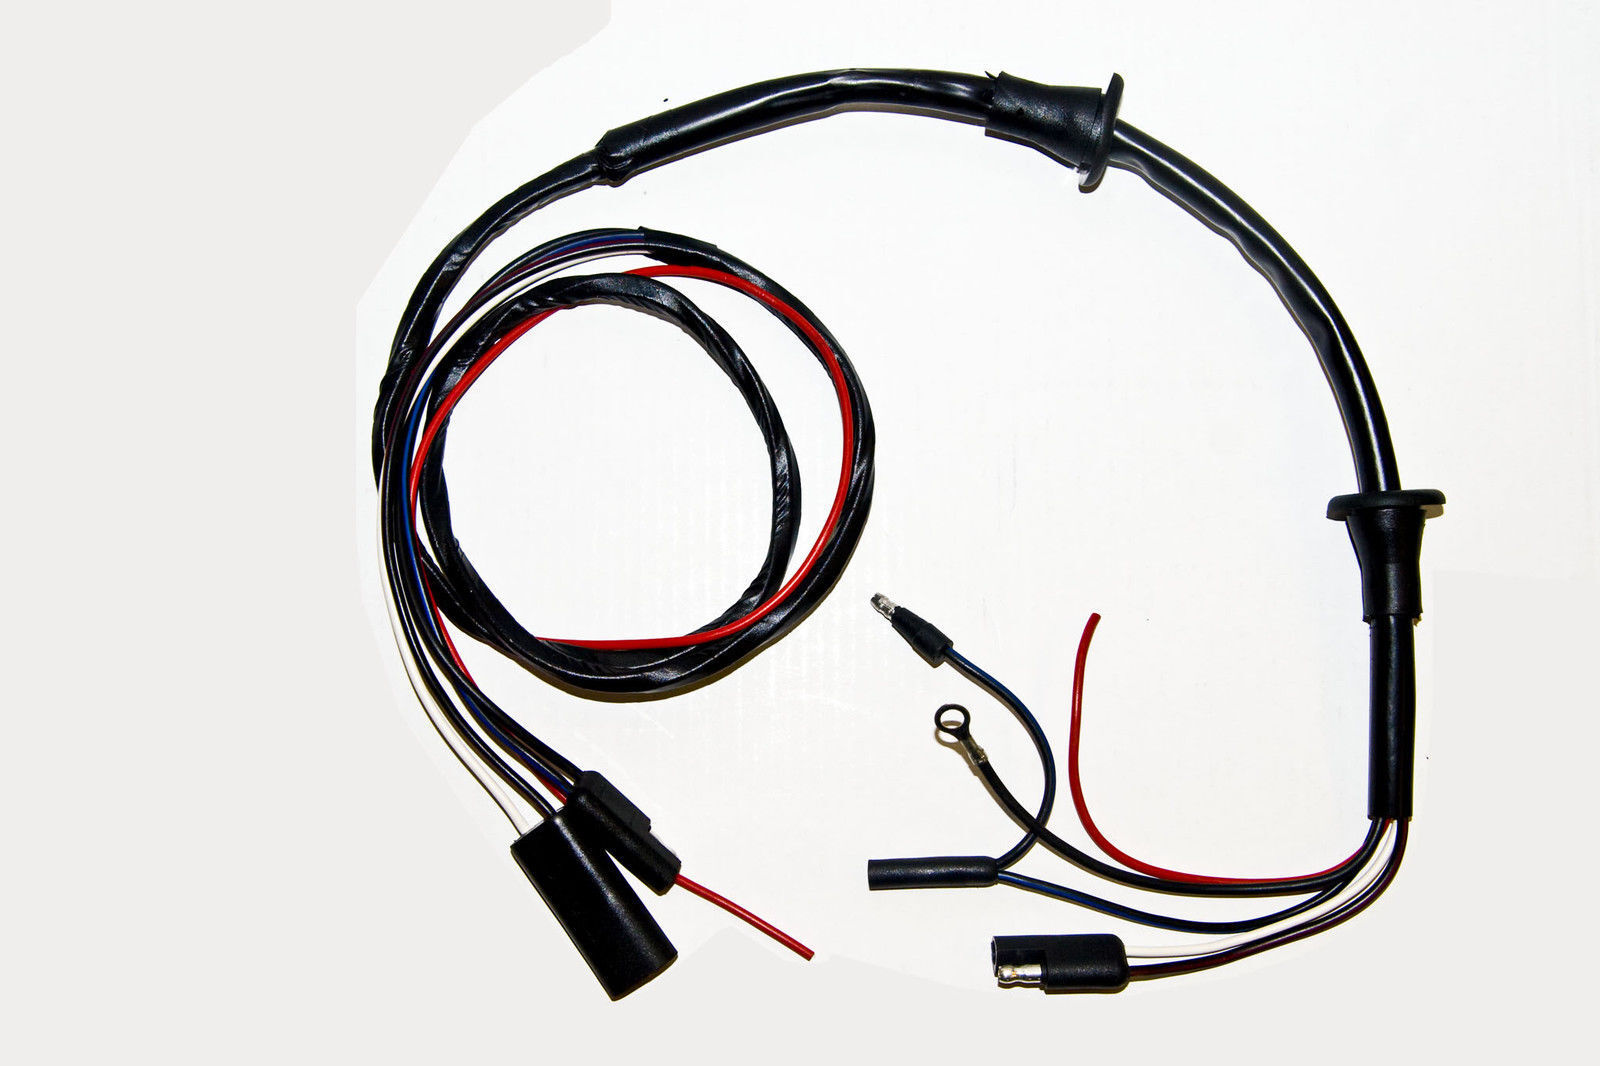 1967 1968 ford mustang door courtesy light and speaker wire harness [ 1600 x 1066 Pixel ]